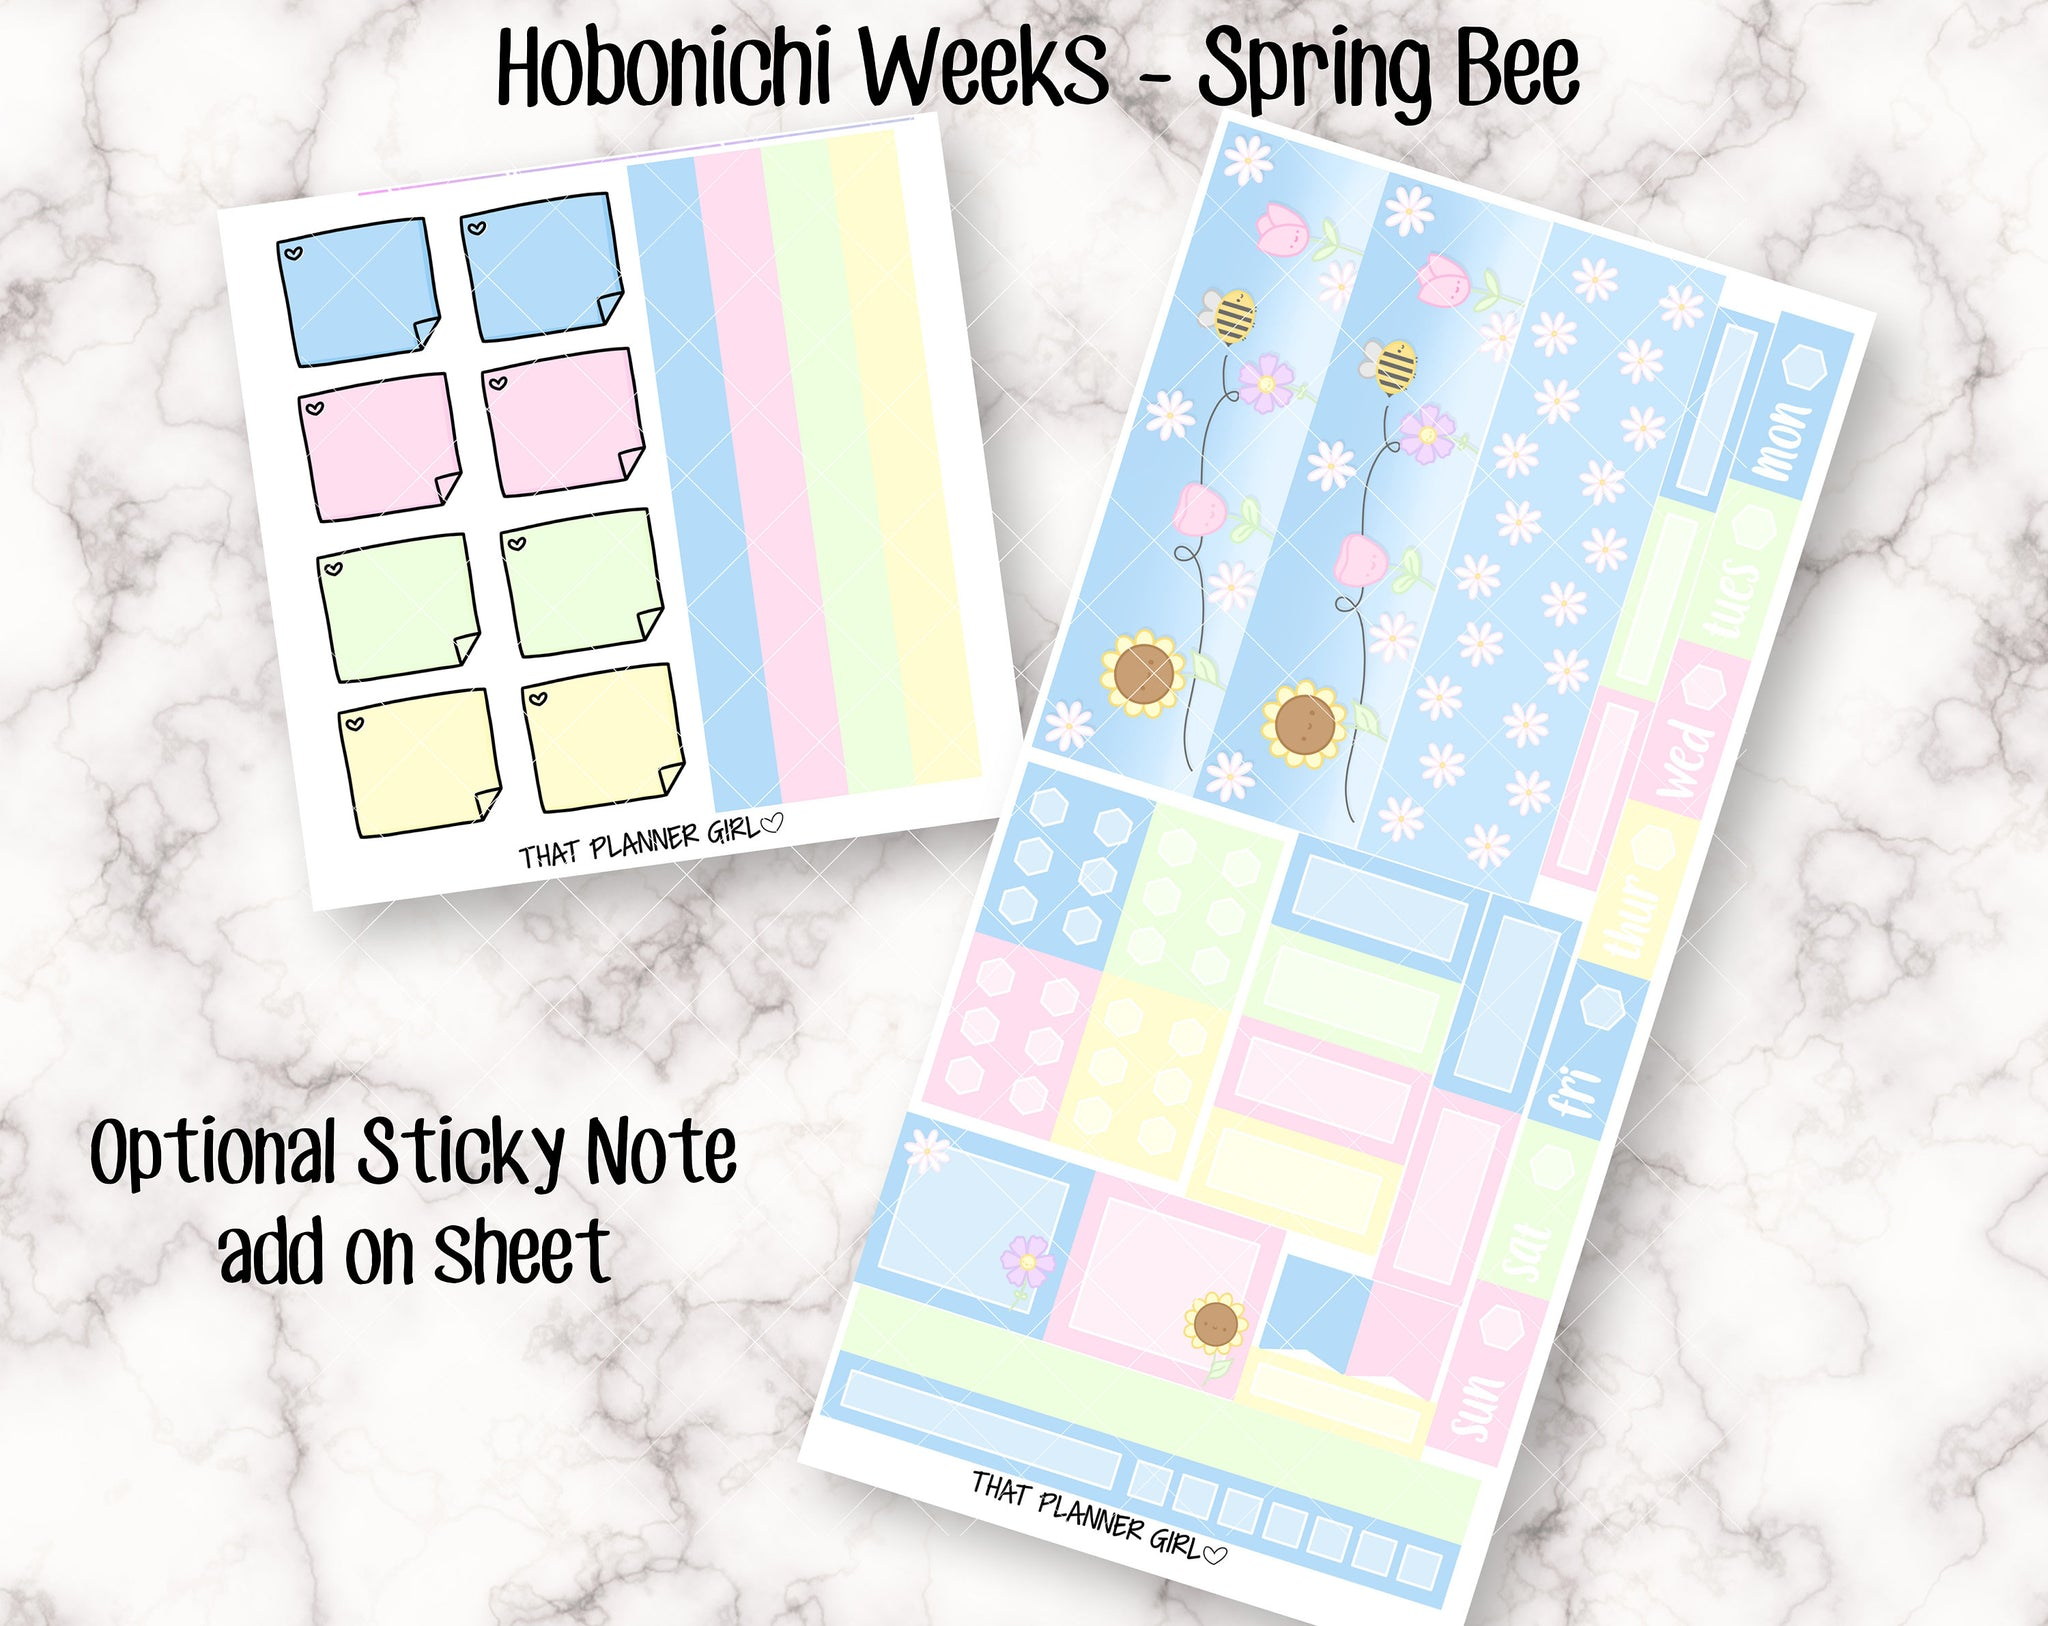 Spring Bee - Hobonichi Weeks Kit